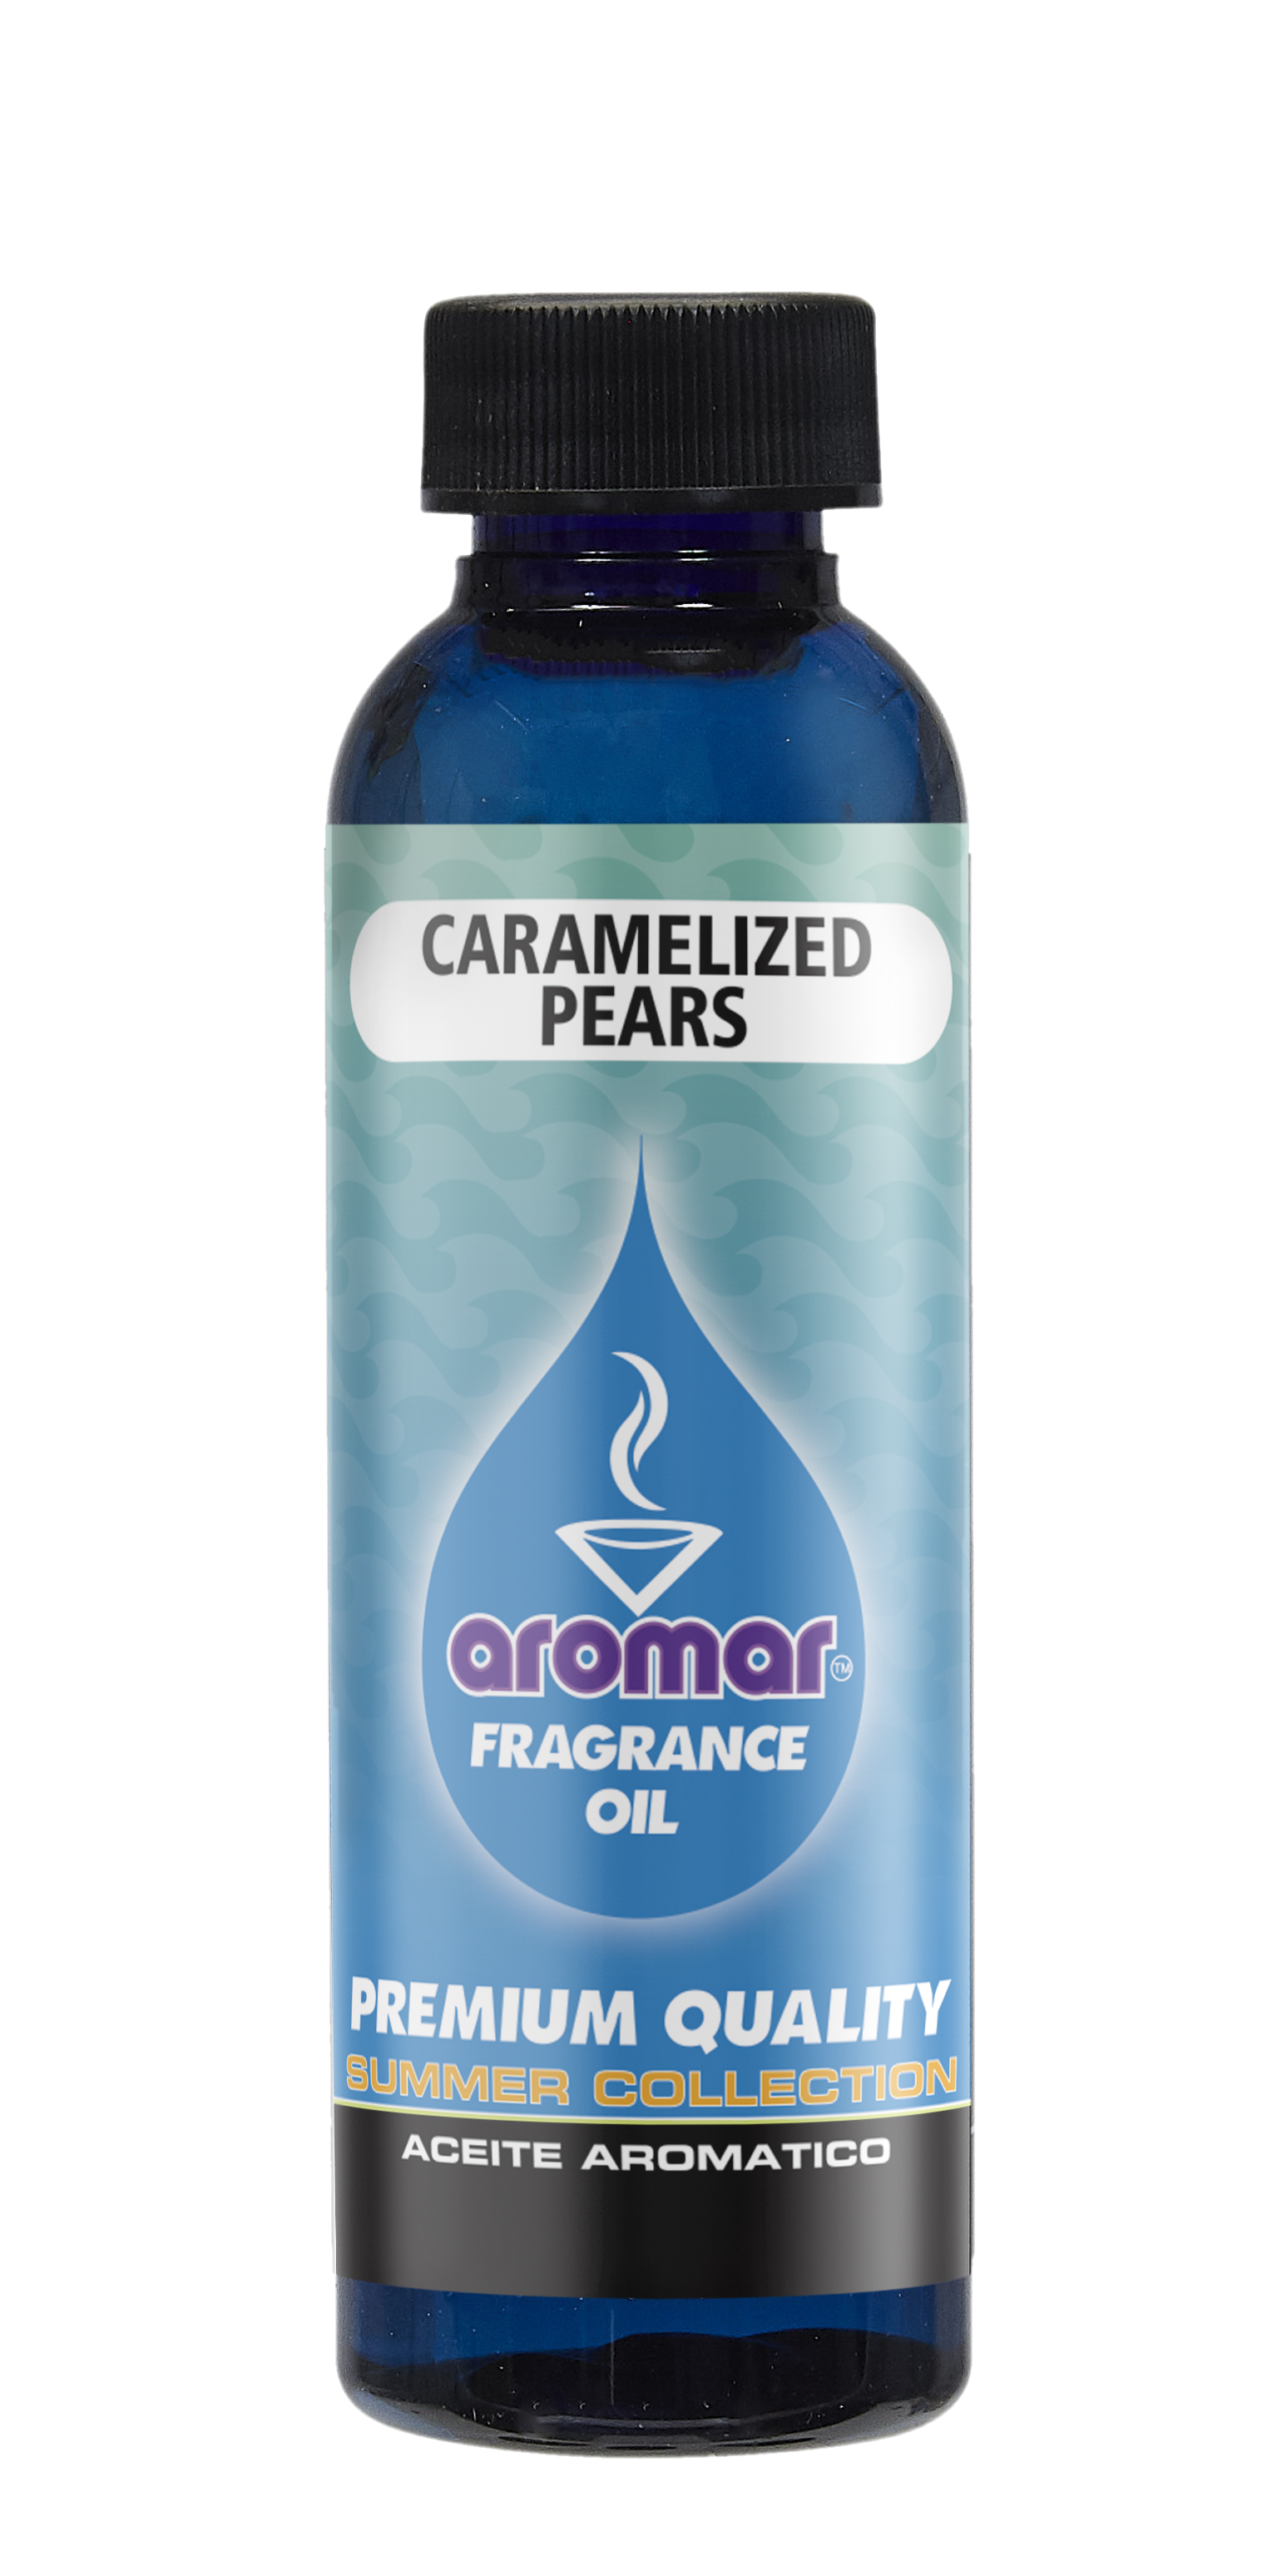 Caramelized Pears Aromatic Oil